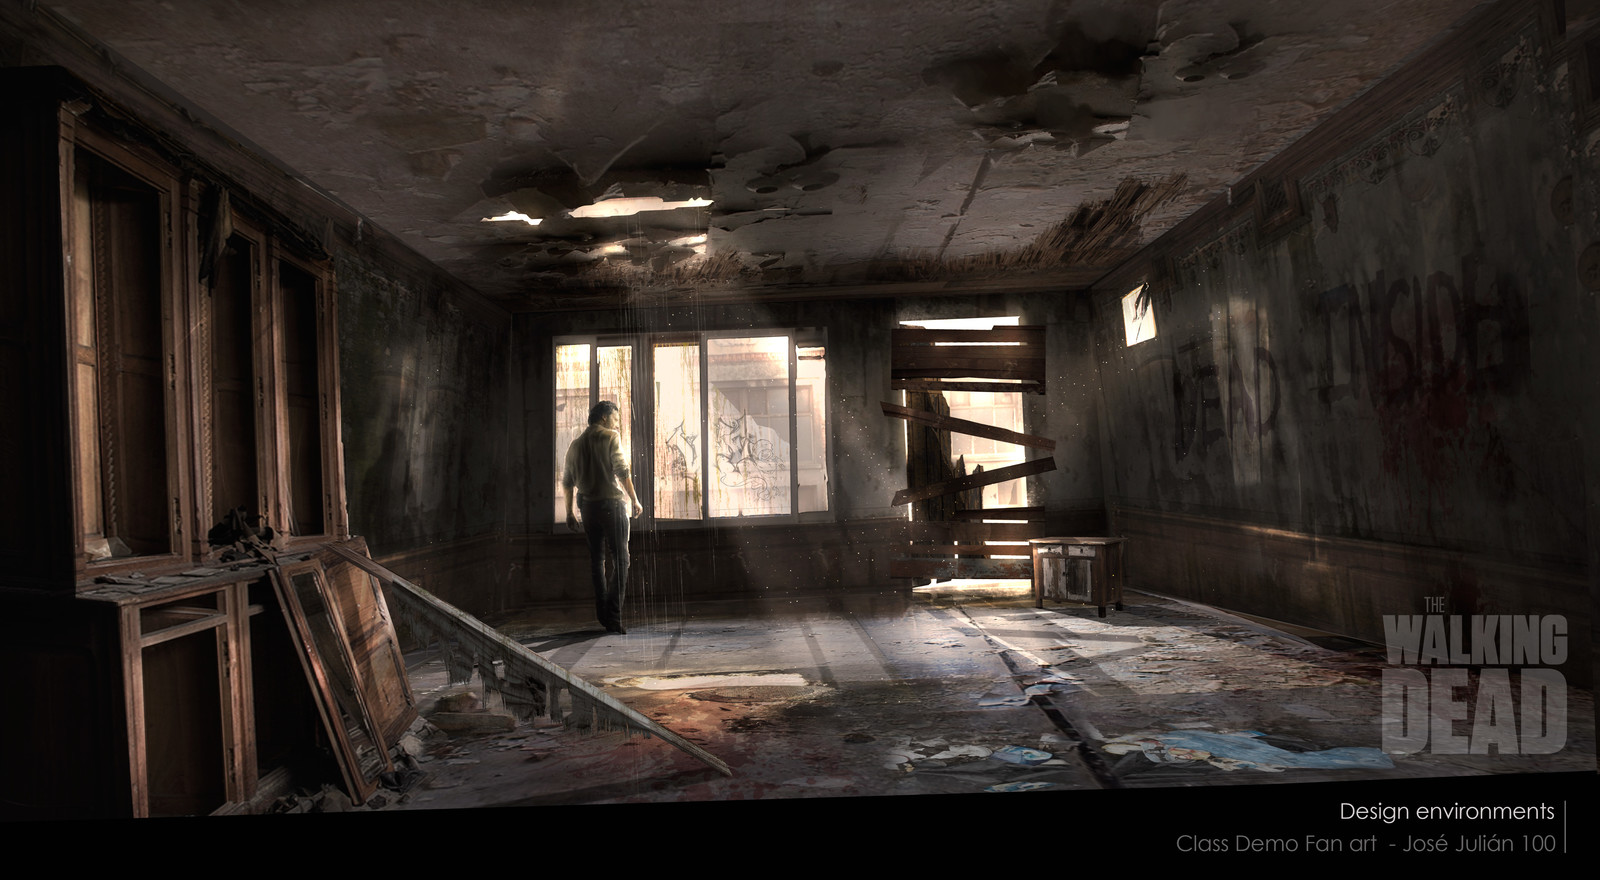 Class Demo Fan art Walking Dead - Design environments